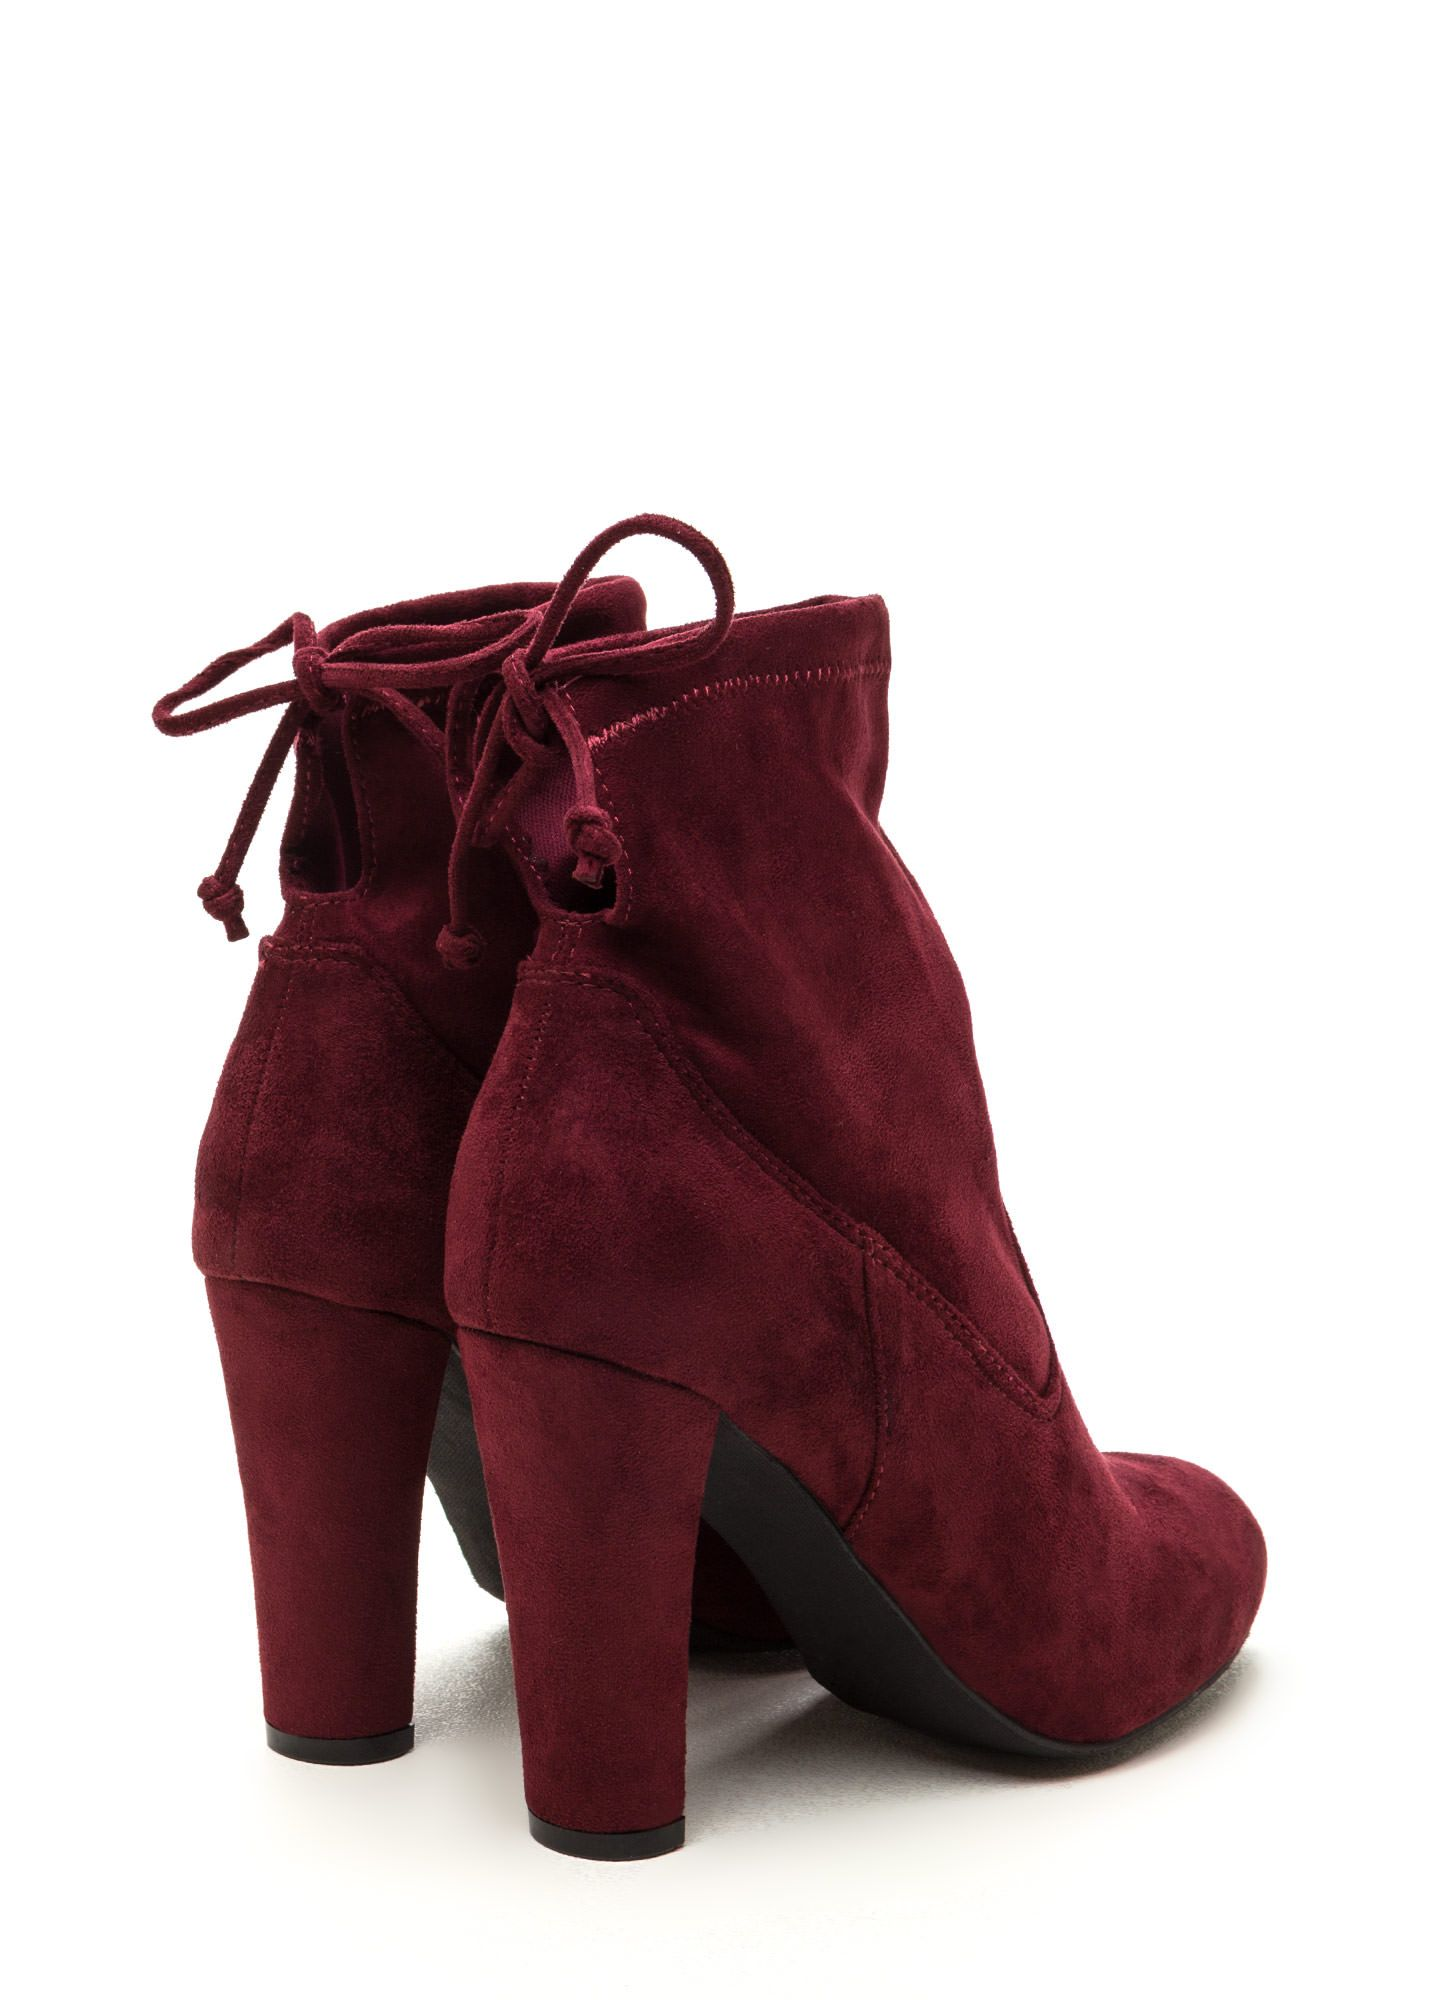 1e74bbb25ac Key To Success Faux Suede Chunky Booties BURGUNDY Suede Booties